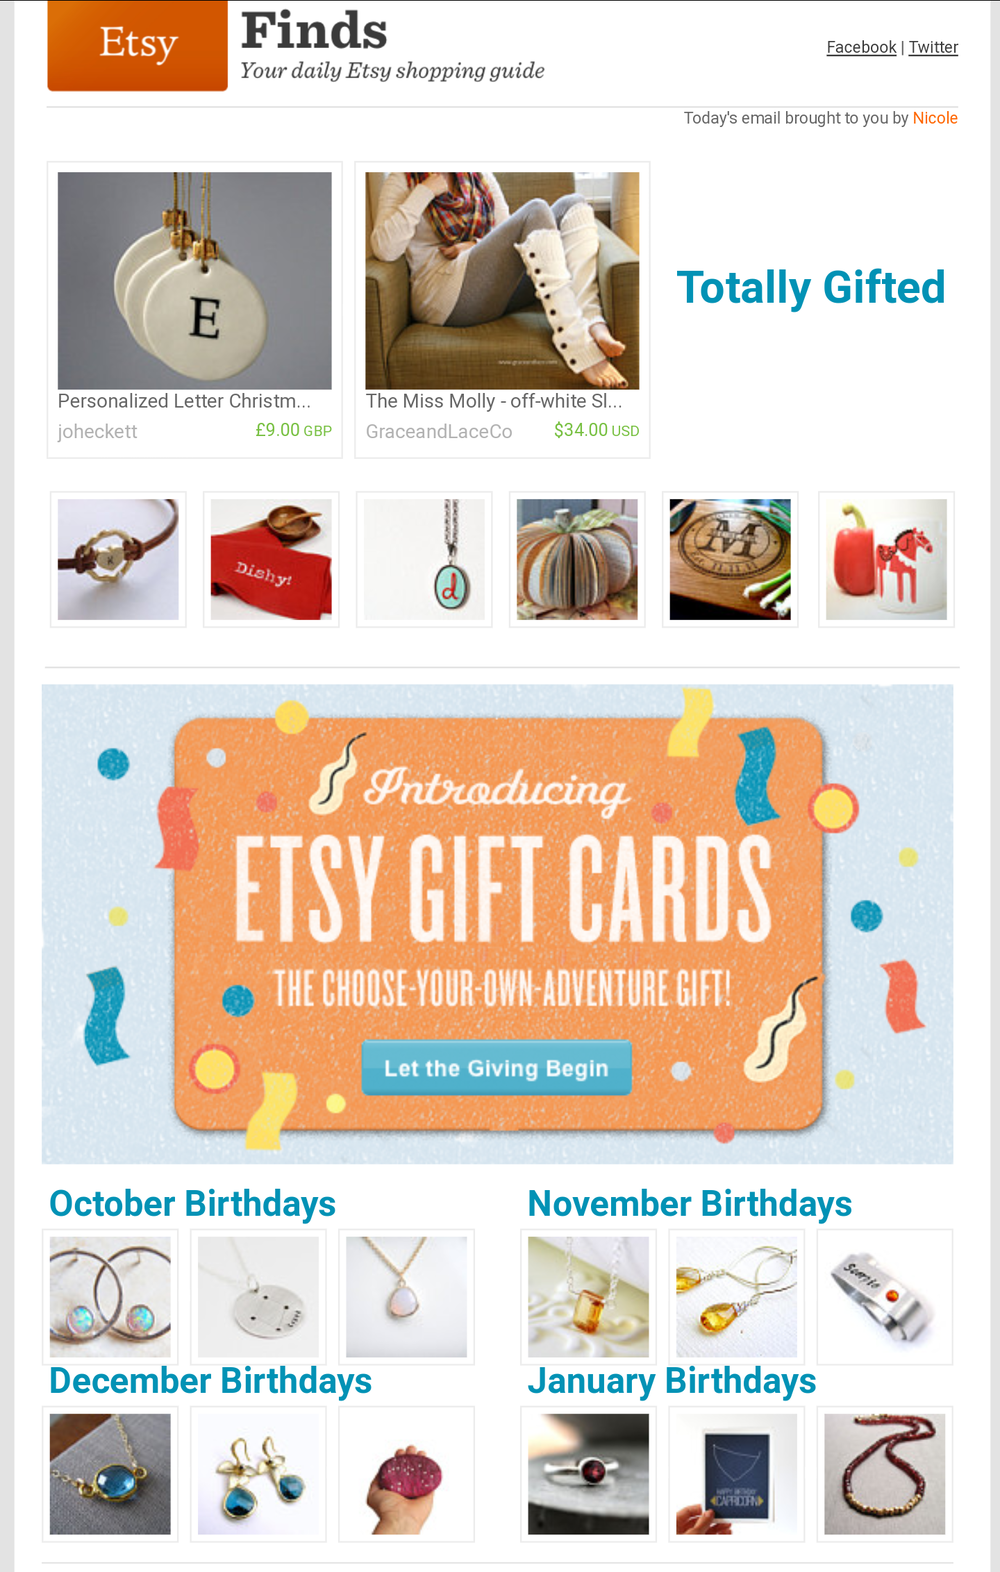 Etsy Finds - Totally Gifted // October 2012